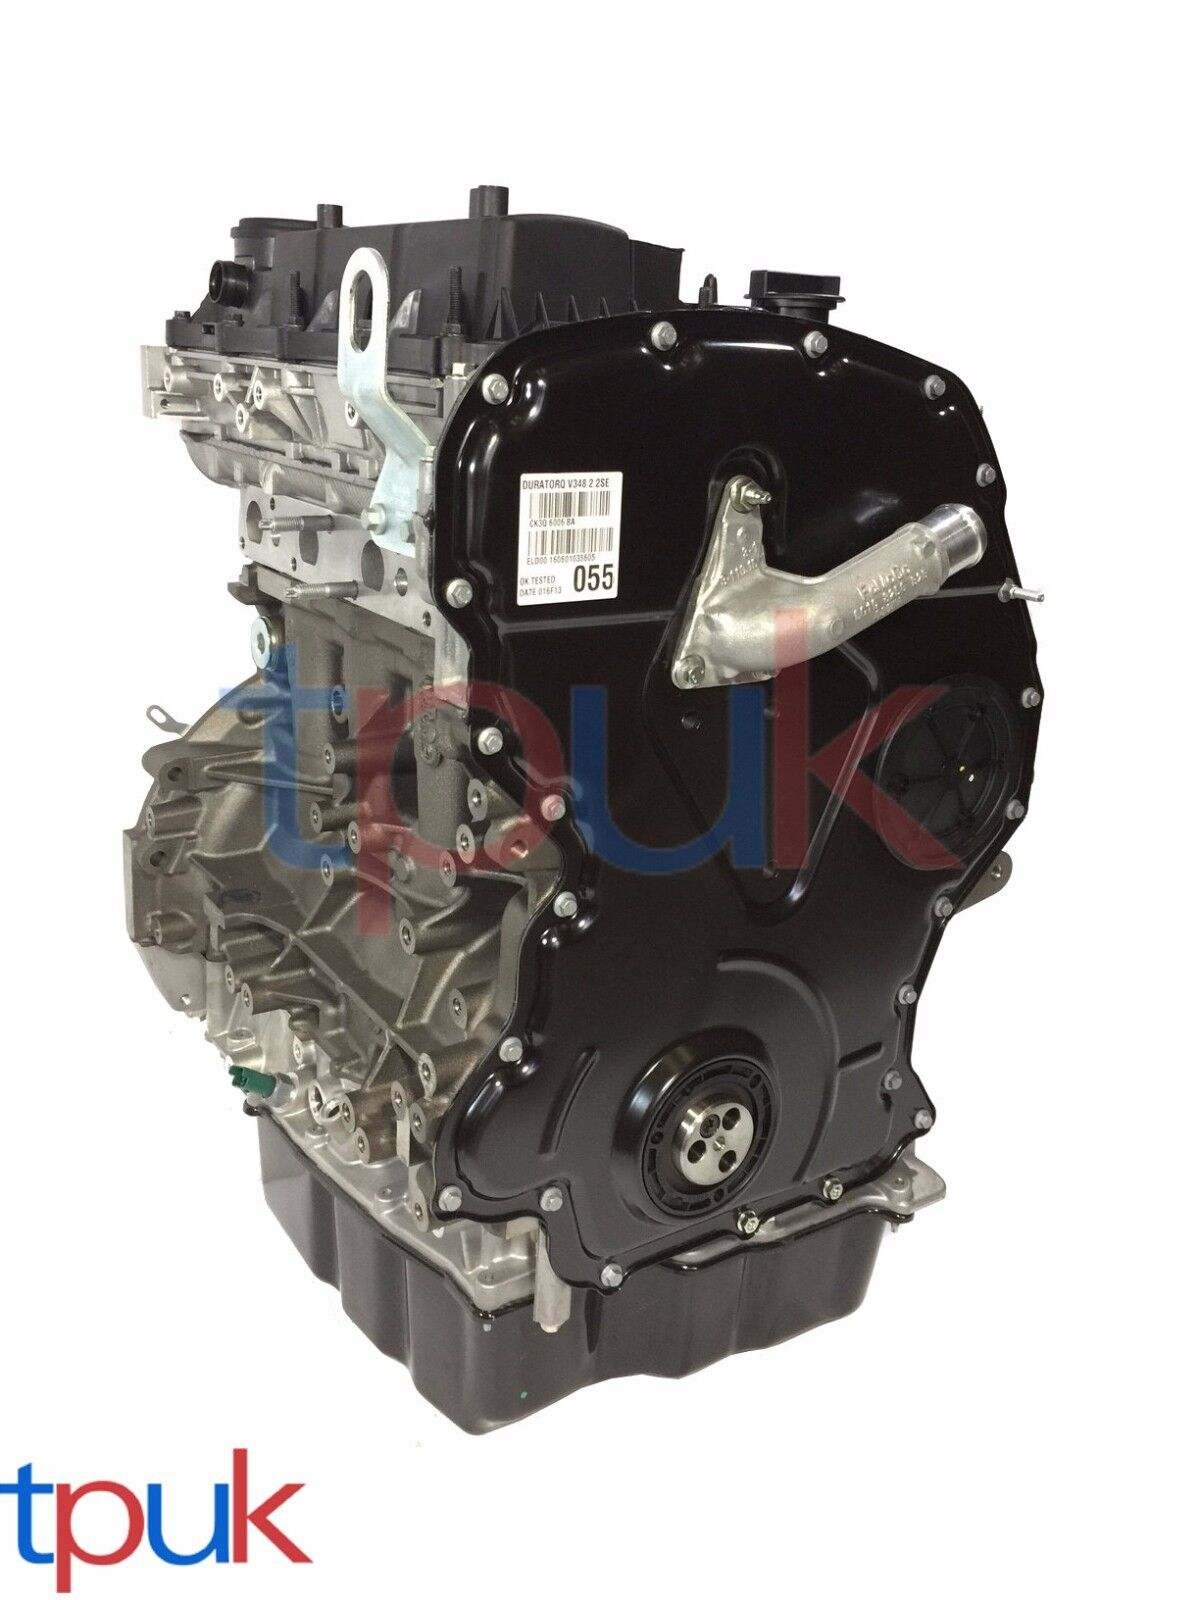 land cummins swaps remanufactured jeep products bear engines company rover big landrover engine